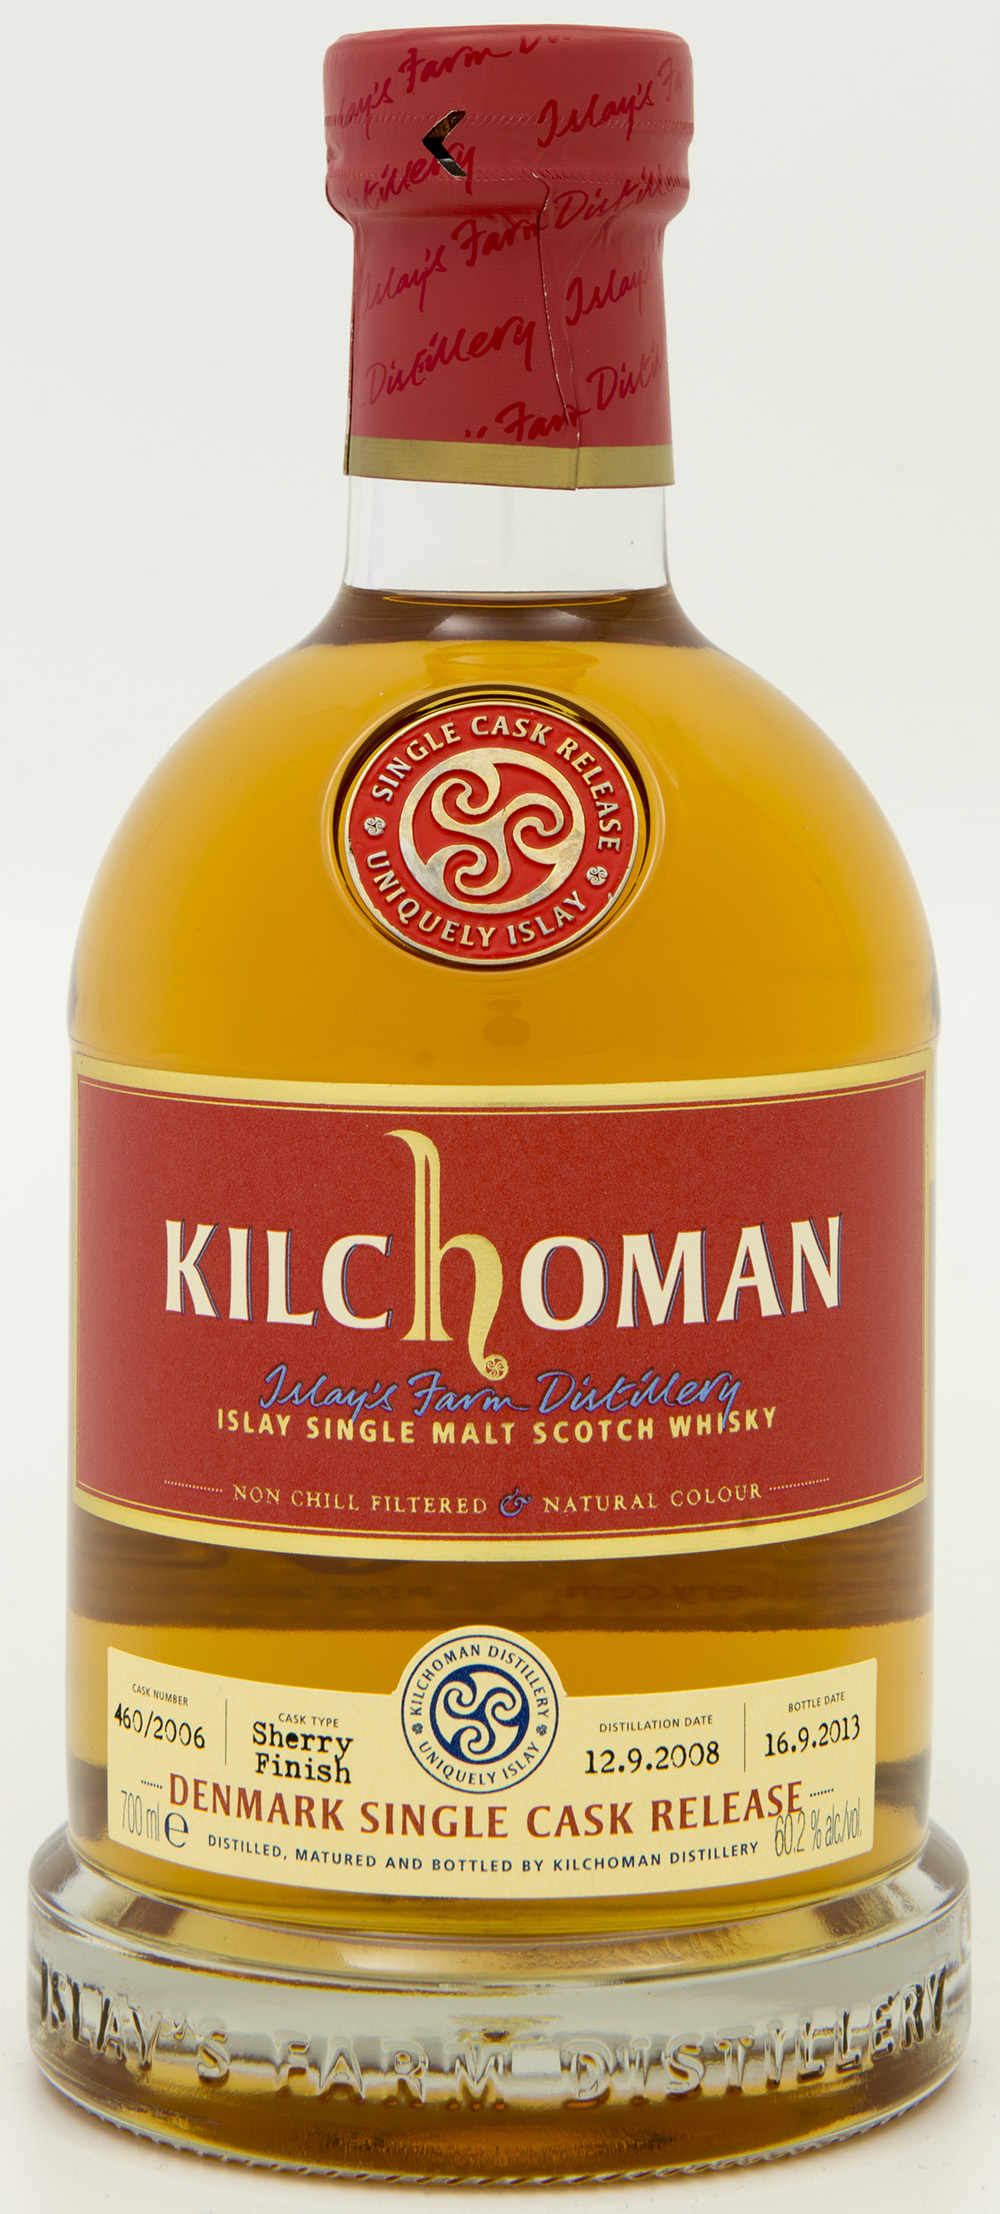 Billede: DSC_8199 - Kilchoman Denmark Single Cask Release 460-2006 - bottle front.jpg